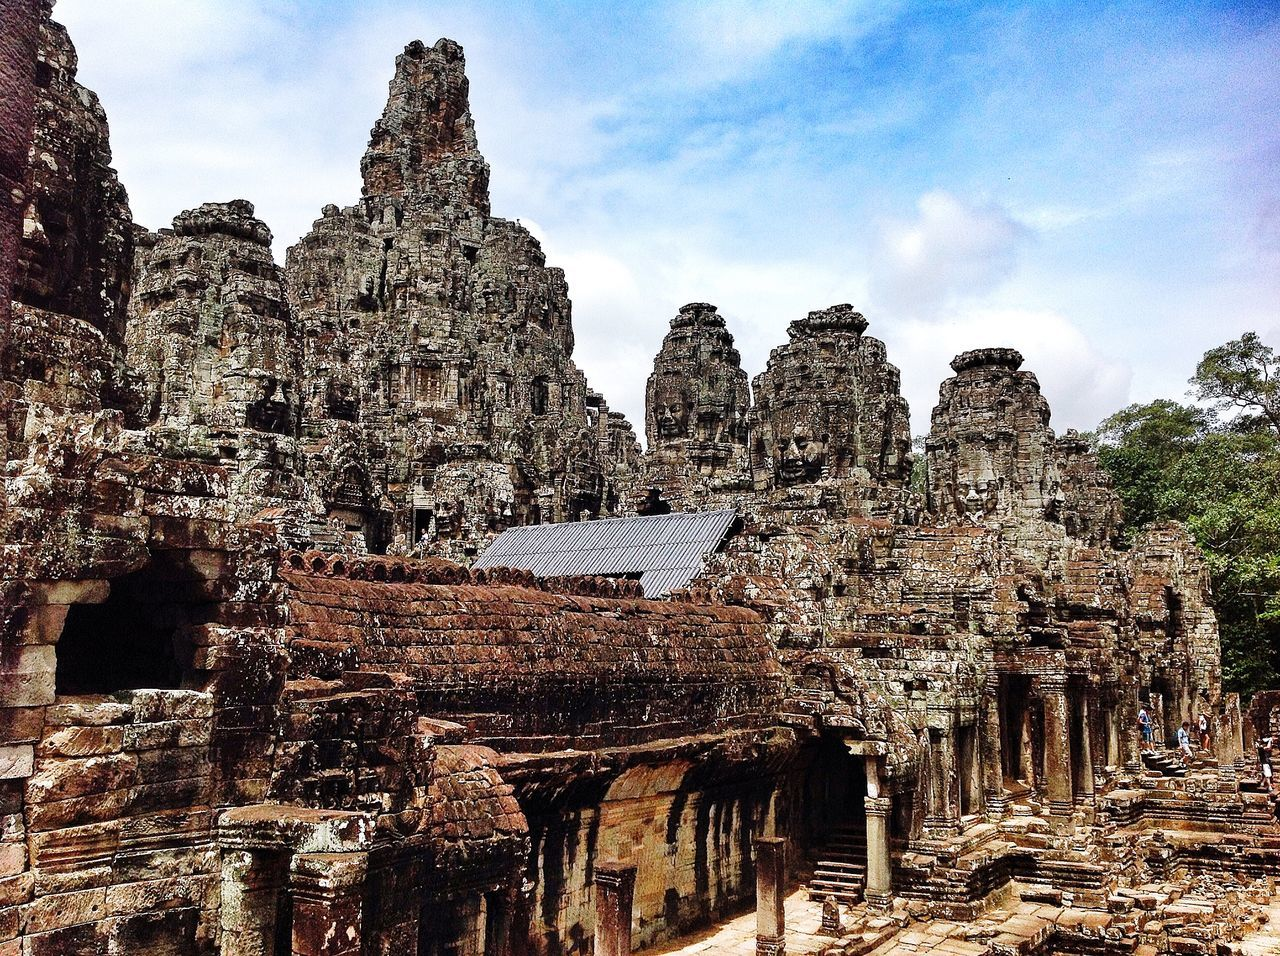 Behold Bayon Architecture Outdoors No People Built Structure Angkor Thom Cambodia Ancient Architecture Travel Photography Travel Angkor Siem Reap Ancient Temple Ancient Civilization Temple Bayon The Week Of Eyeem